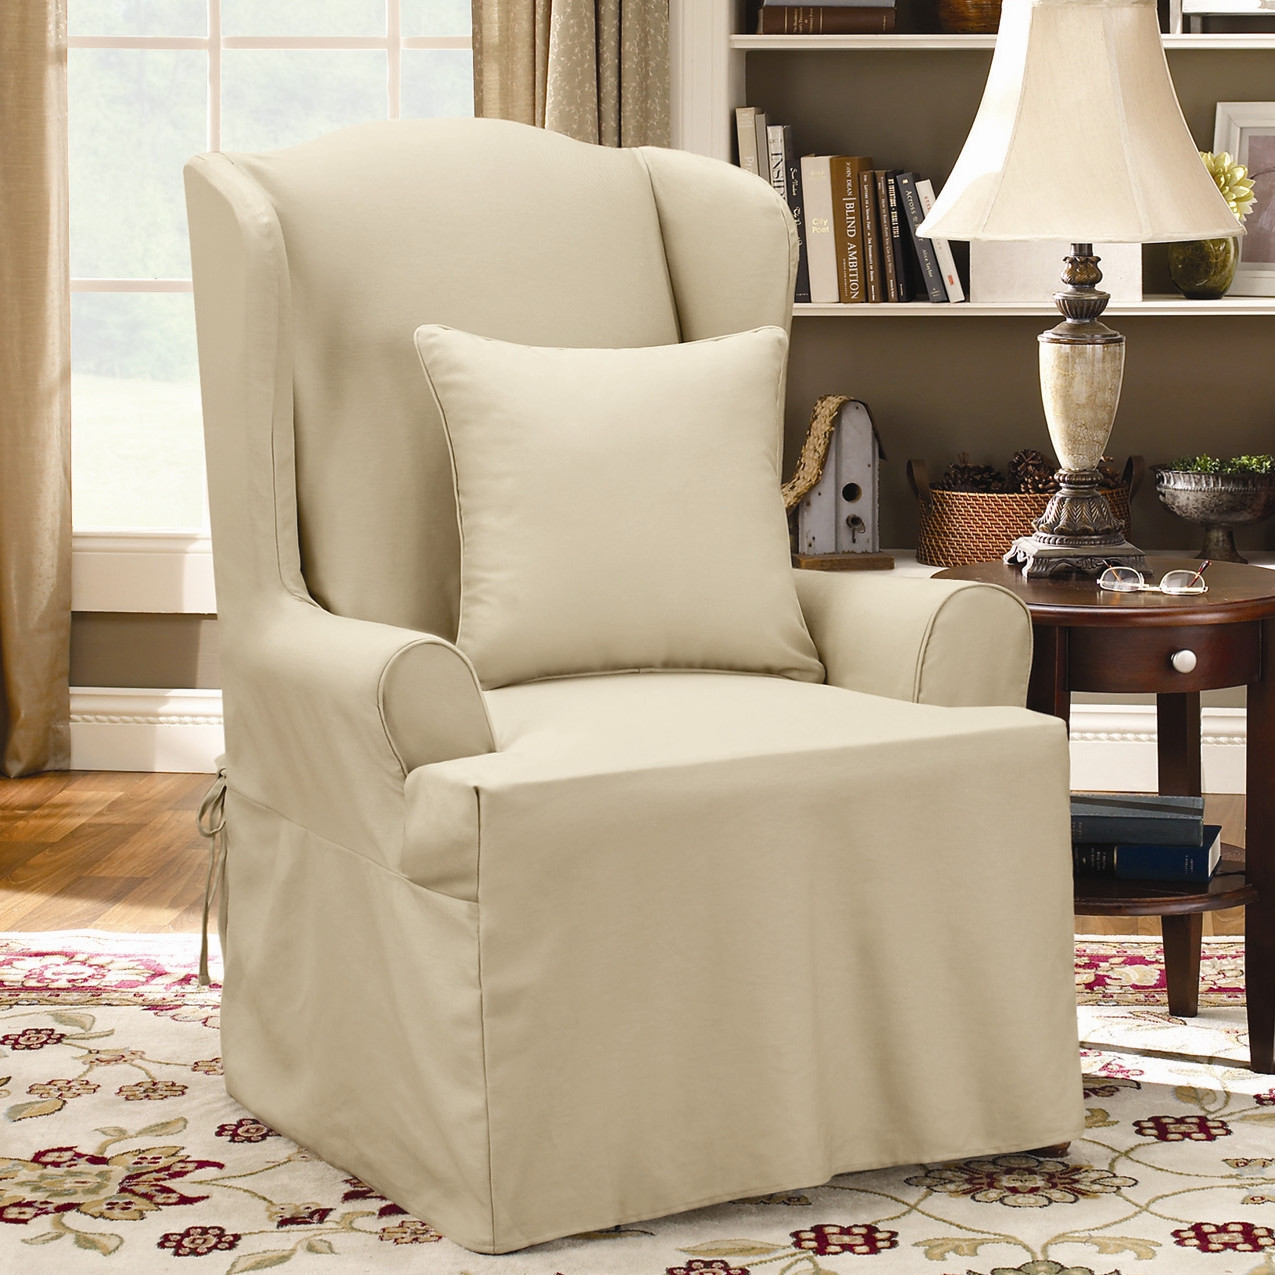 Best ideas about Living Room Chair Covers . Save or Pin Living Room Living Room Blinds Ideas Best Blinds White Now.